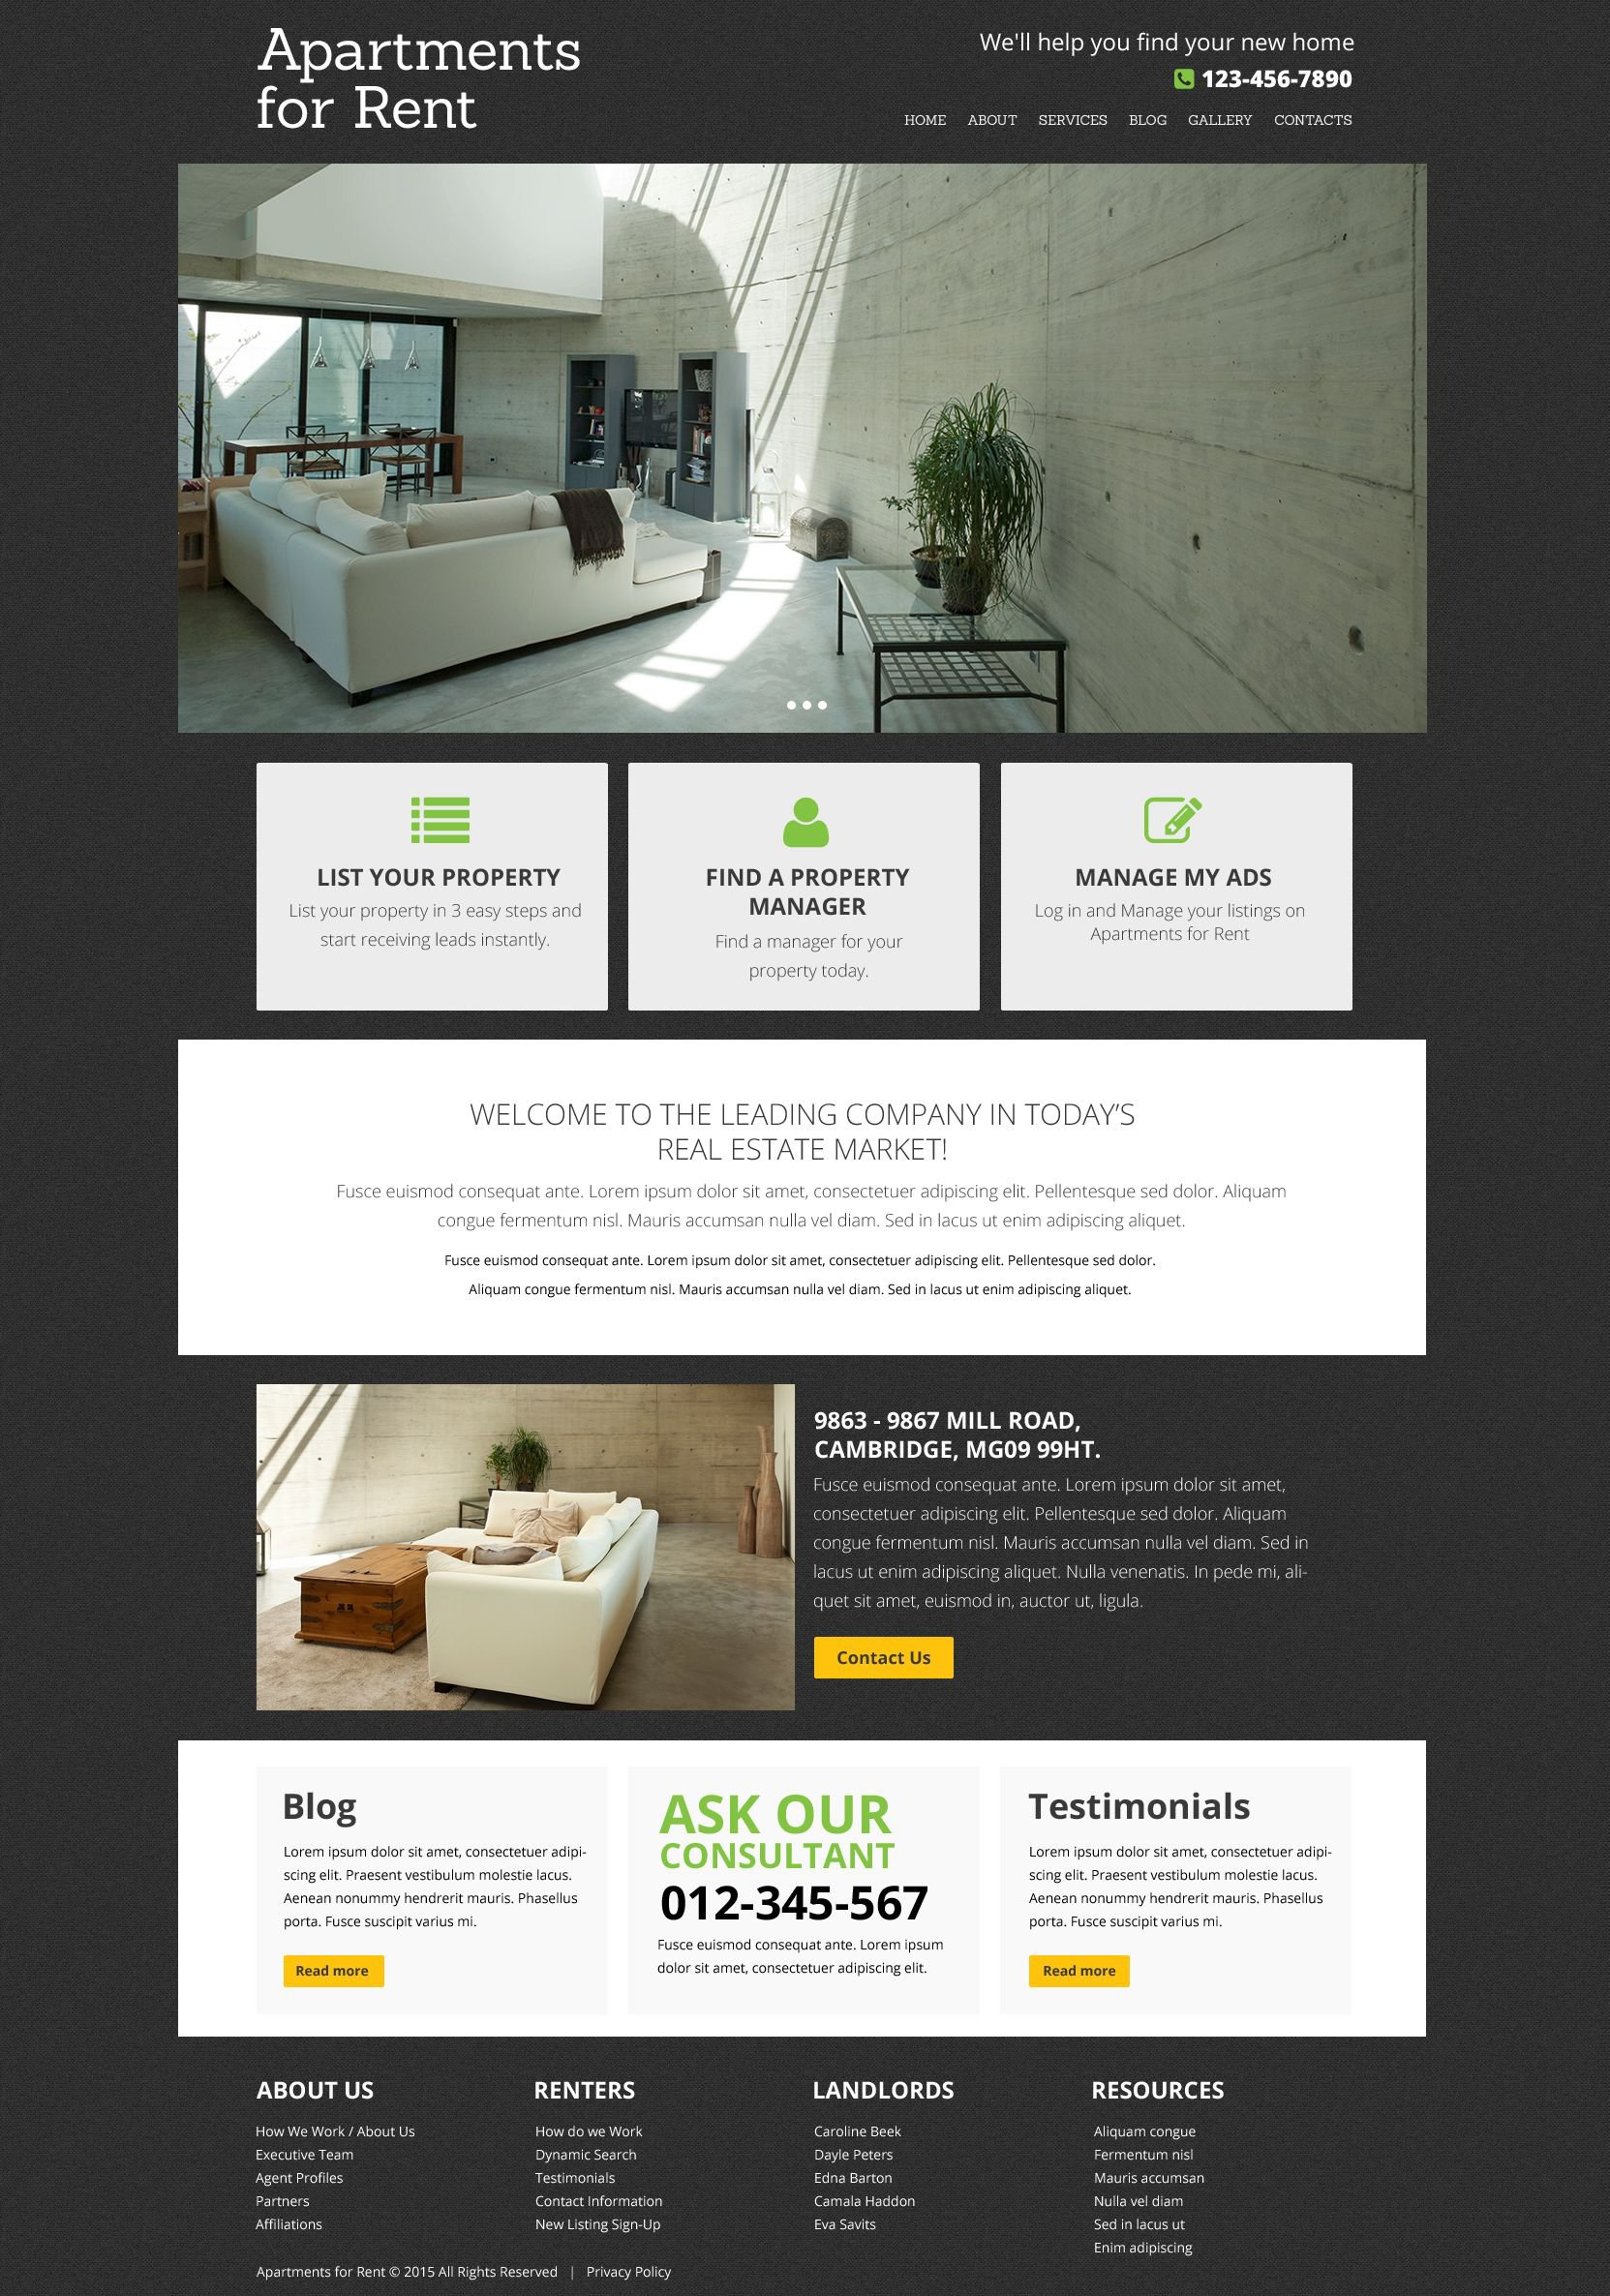 The Apartments Rent Drupal Design 53348, one of the best Drupal templates of its kind (real estate, most popular), also known as apartments rent Drupal template, real estate agency Drupal template, services Drupal template, house Drupal template, home Drupal template, apartment Drupal template, buildings Drupal template, finance Drupal template, loan Drupal template, sales Drupal template, rentals Drupal template, management Drupal template, search Drupal template, team Drupal template, money Drupal template, foreclosure Drupal template, estimator Drupal template, investment Drupal template, development Drupal template, constructions Drupal template, architecture Drupal template, engineering Drupal template, apartment Drupal template, sale Drupal template, rent Drupal template, architecture Drupal template, broker Drupal template, lots and related with apartments rent, real estate agency, services, house, home, apartment, buildings, finance, loan, sales, rentals, management, search, team, money, foreclosure, estimator, investment, development, constructions, architecture, engineering, apartment, sale, rent, architecture, broker, lots, etc.